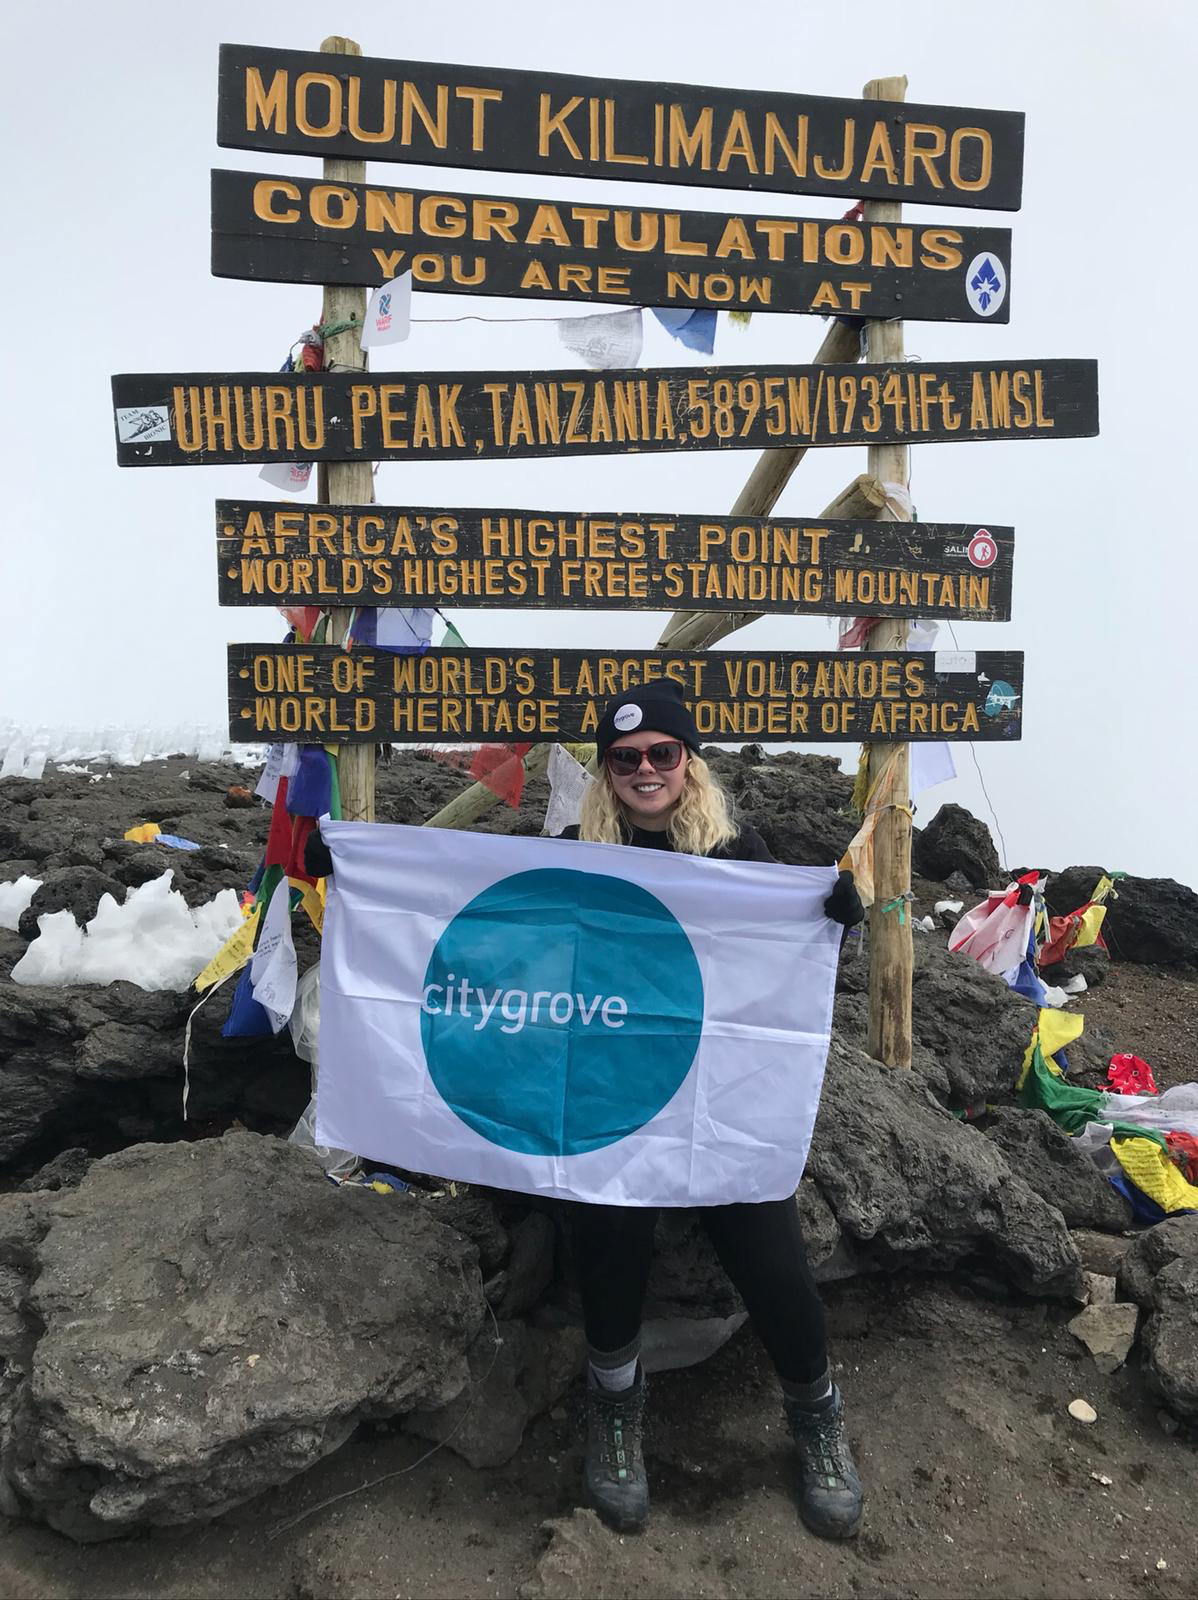 Citygrove was delighted to sponsor Abbi Sheehan on her successful climb up Kilimanjaro in August 2018, raising over £3,000 for Hope for Children.